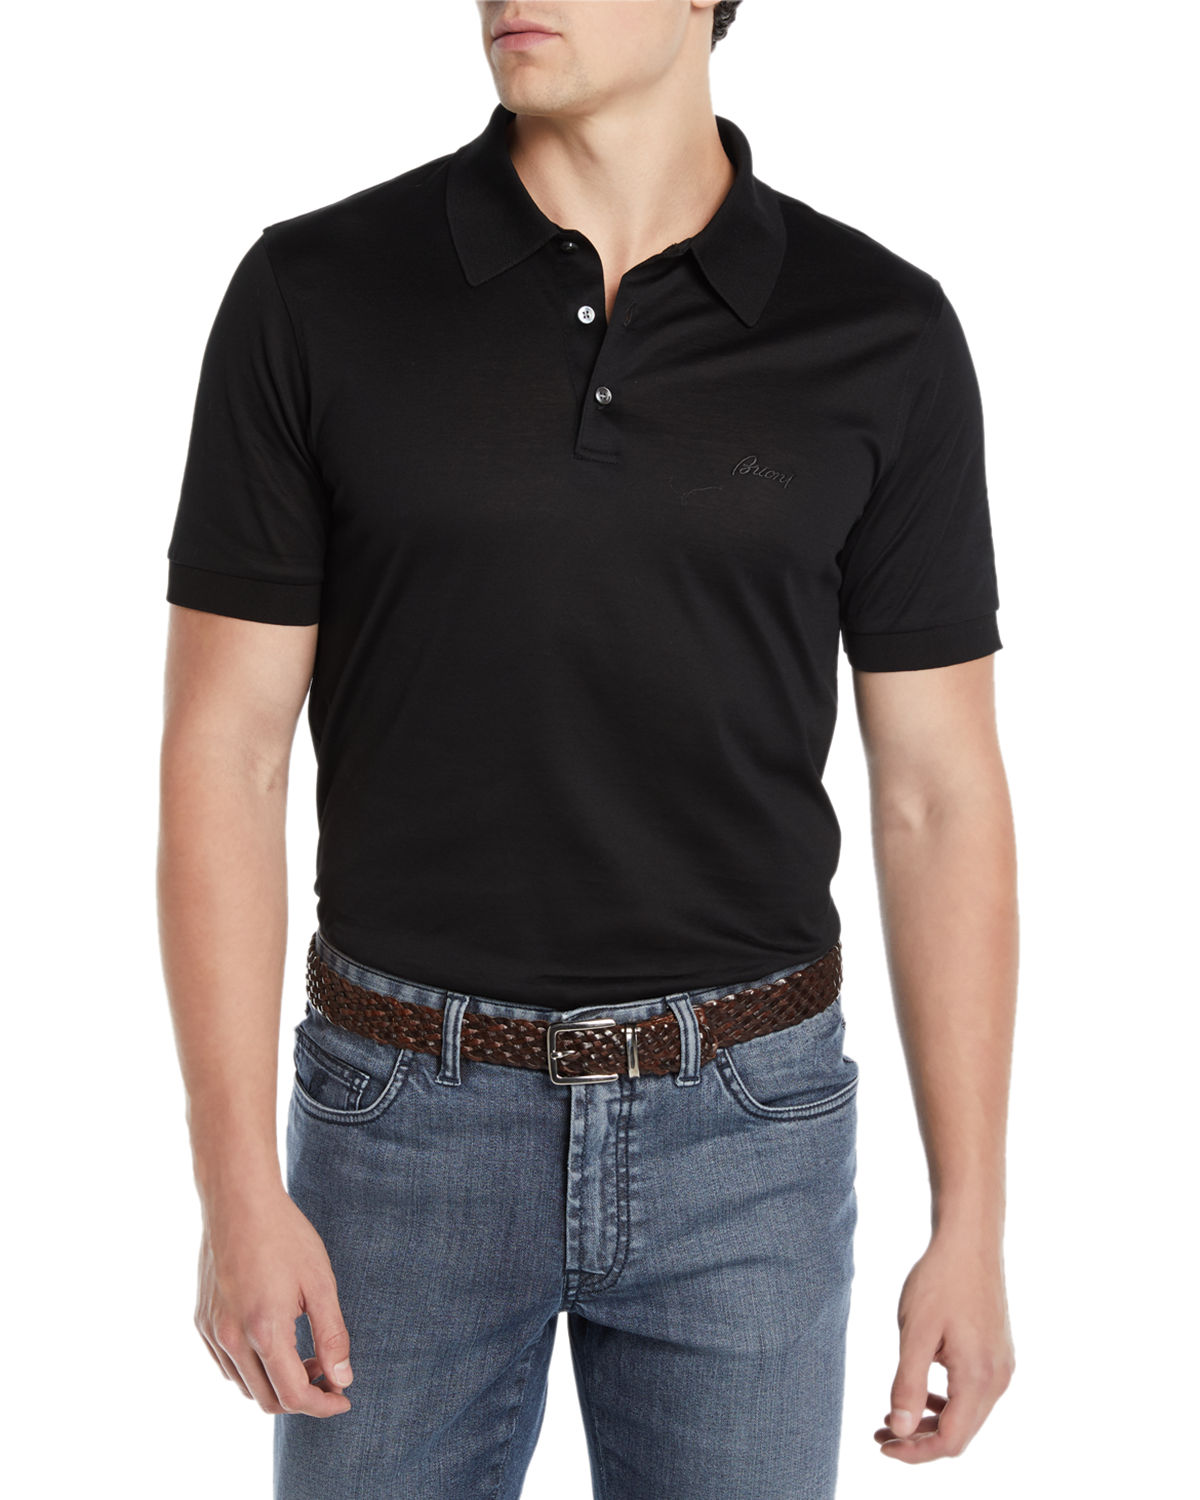 b718e0cb0ef Brioni Men's Three-Button Jersey Polo Shirt | Neiman Marcus